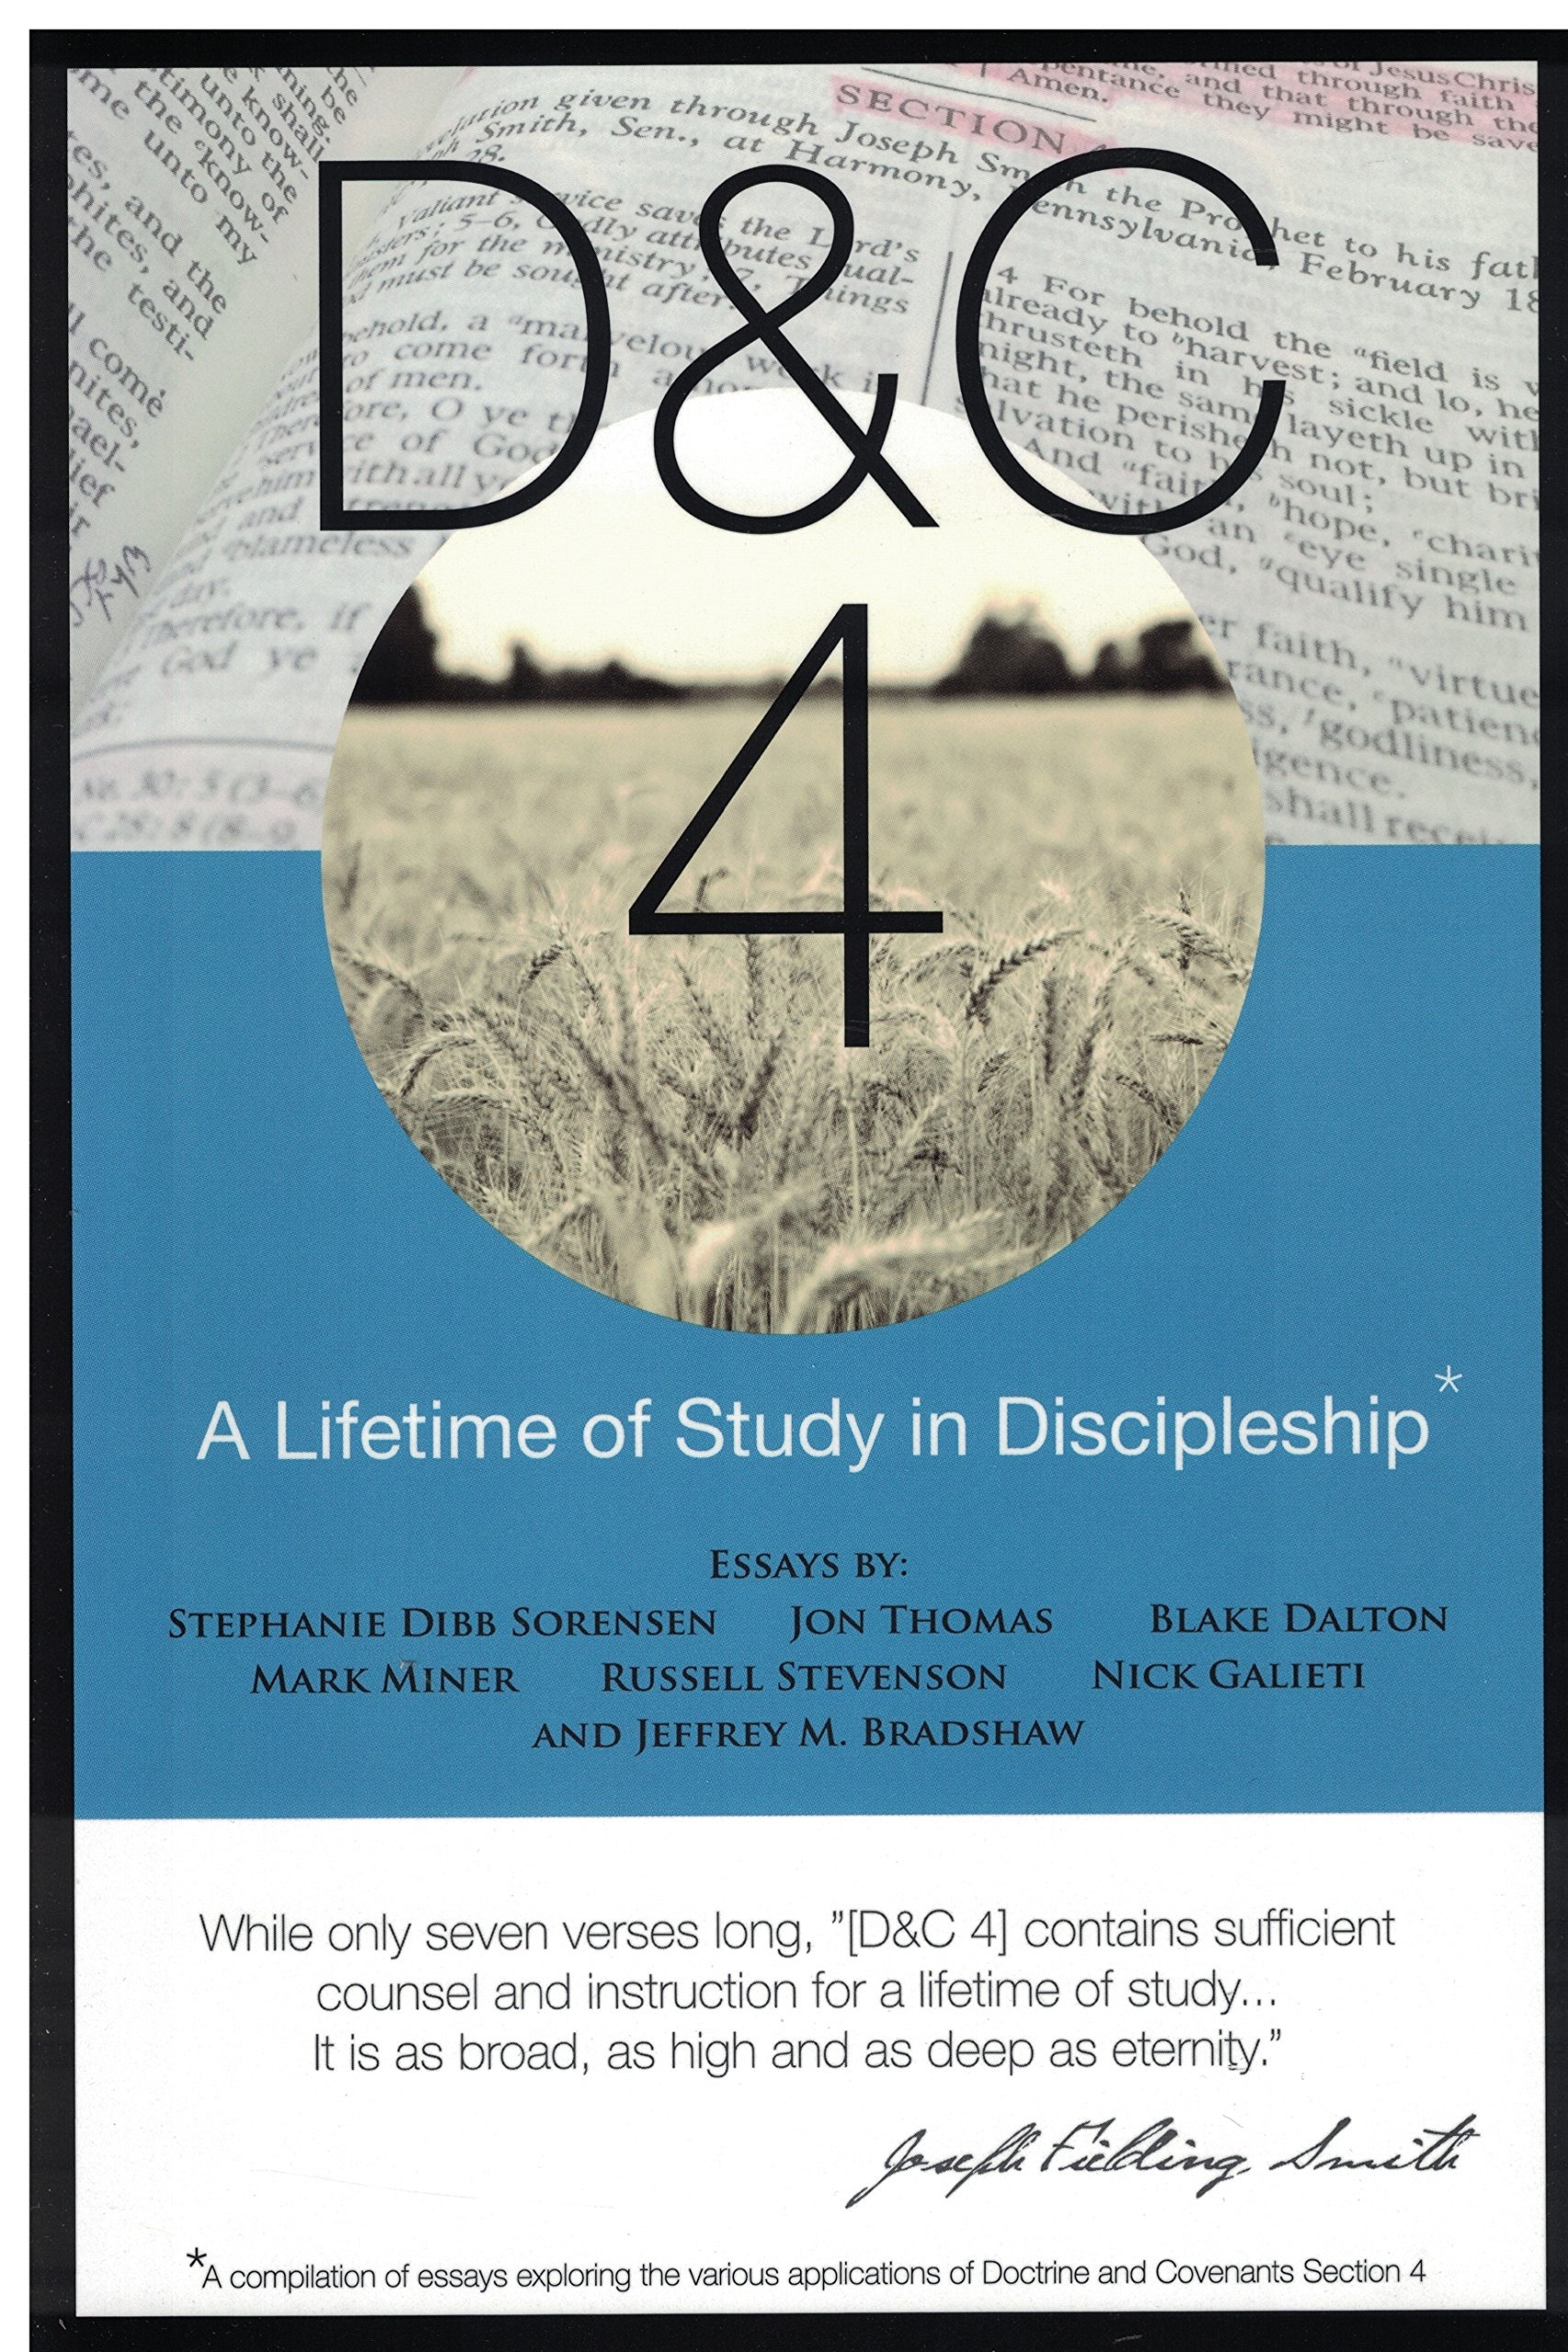 D&C 4;  A Lifetime of Study in Discipleship - A History, Womanhood and Relief Society, Beatitudes, Eternal Parent, Addiction Recovery, Doctrinal Commentary, Reward of Consecrated Service, Bradshaw, Jeffrey M. & Blake Dalton & Nick Galieti & Mark Miner & Stephanie Dibb Sorensen & Russell Stevenson & Jon Thomas